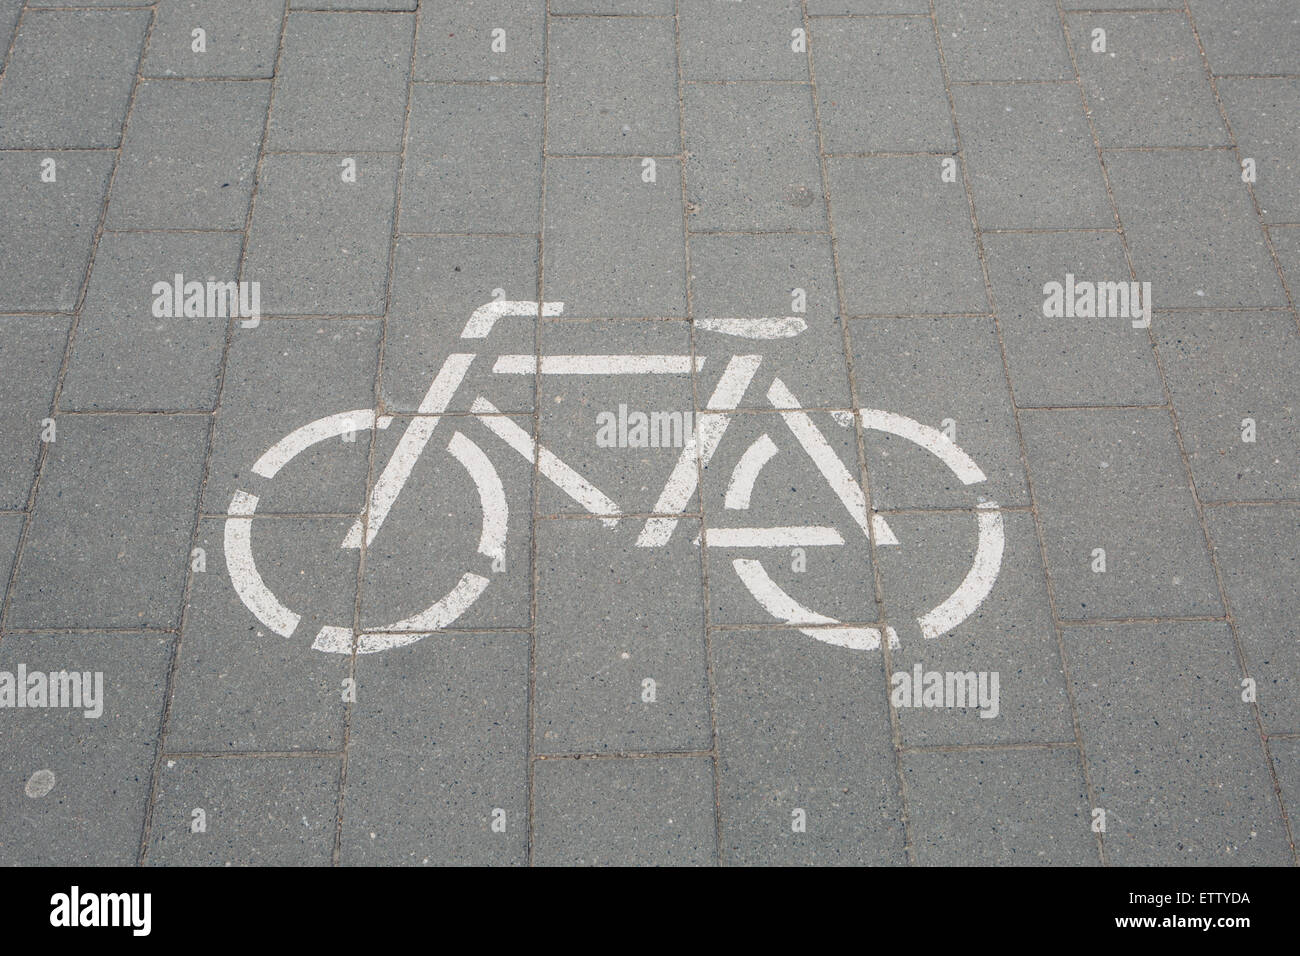 Germany, pictogram of a bicycle lane - Stock Image